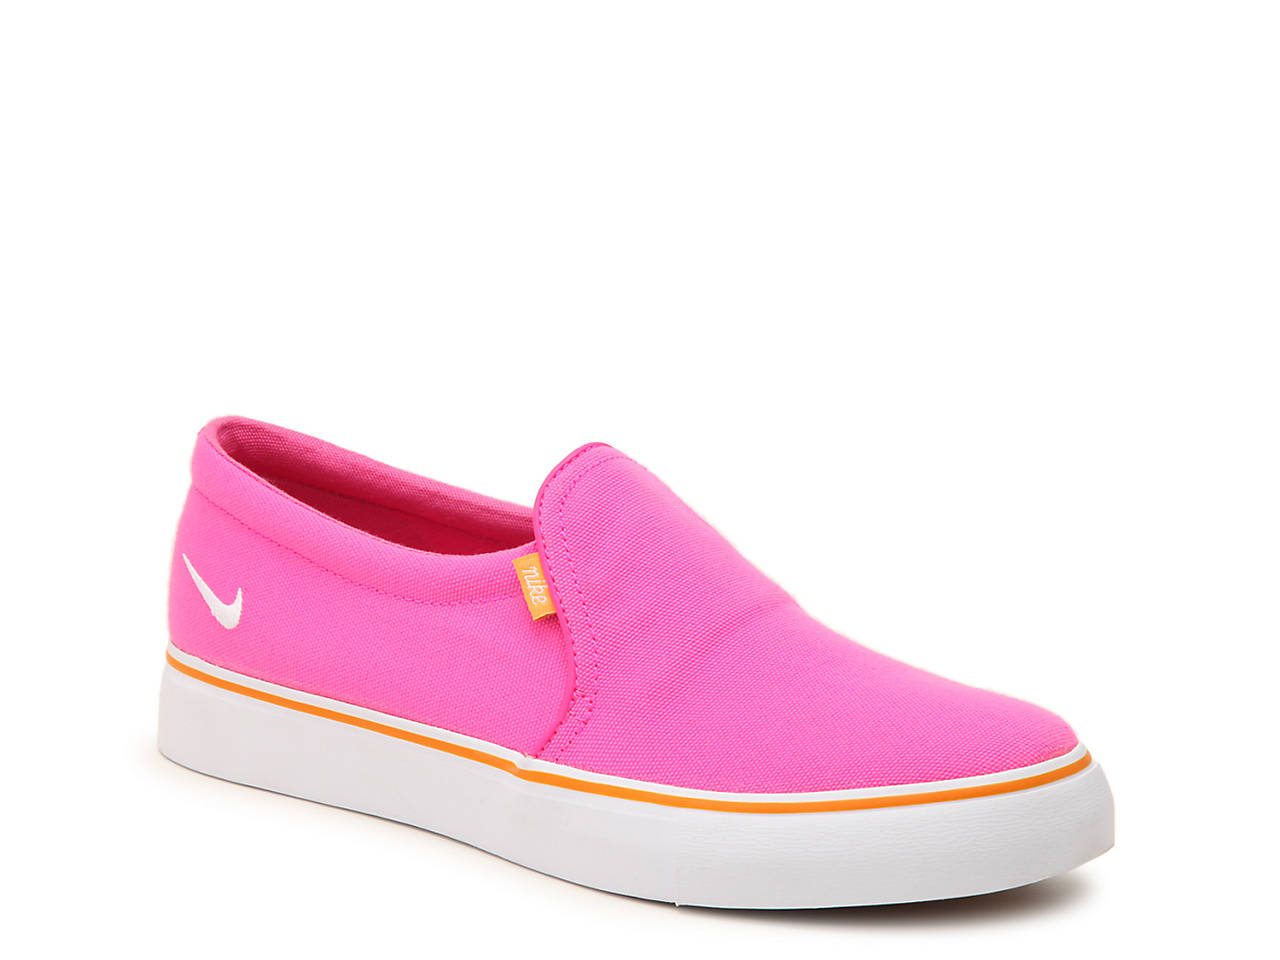 5ef375c2b5b Nike Court Royale AC Slip-On Sneaker - Women's Women's Shoes | DSW